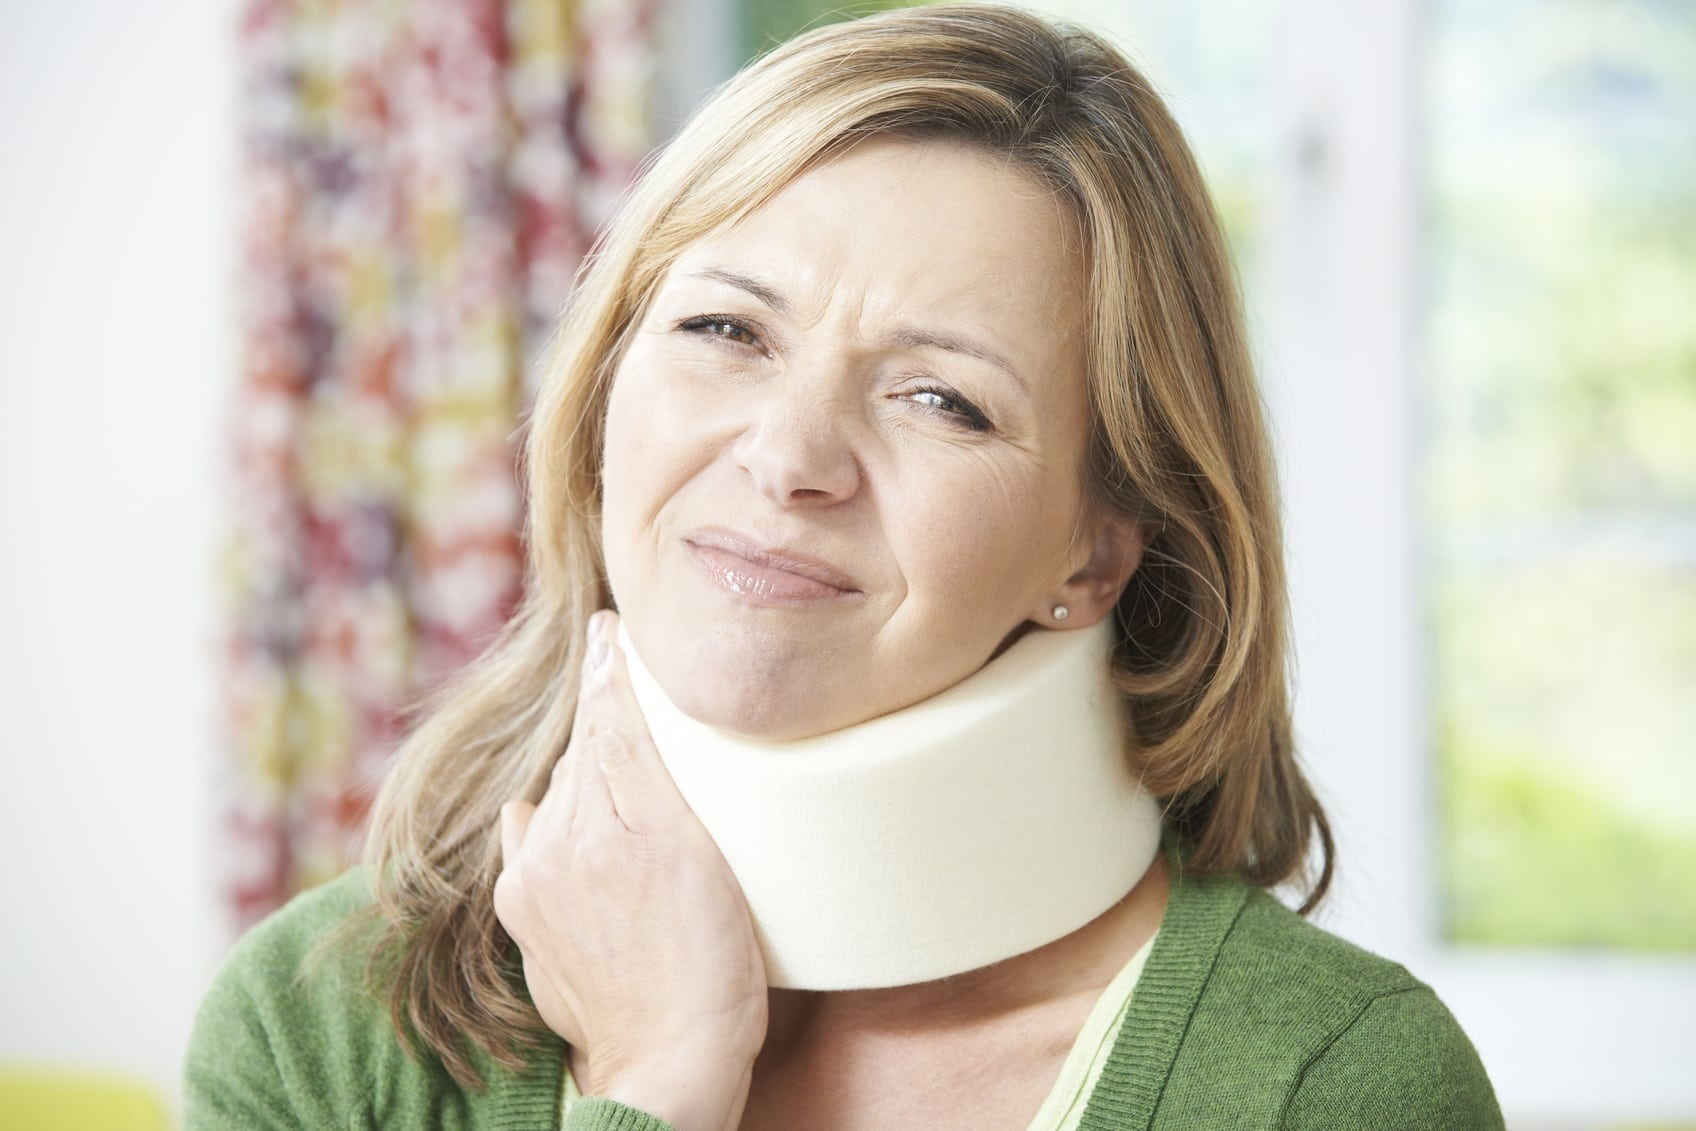 Neck Injury | Personal Injury Lawsuit